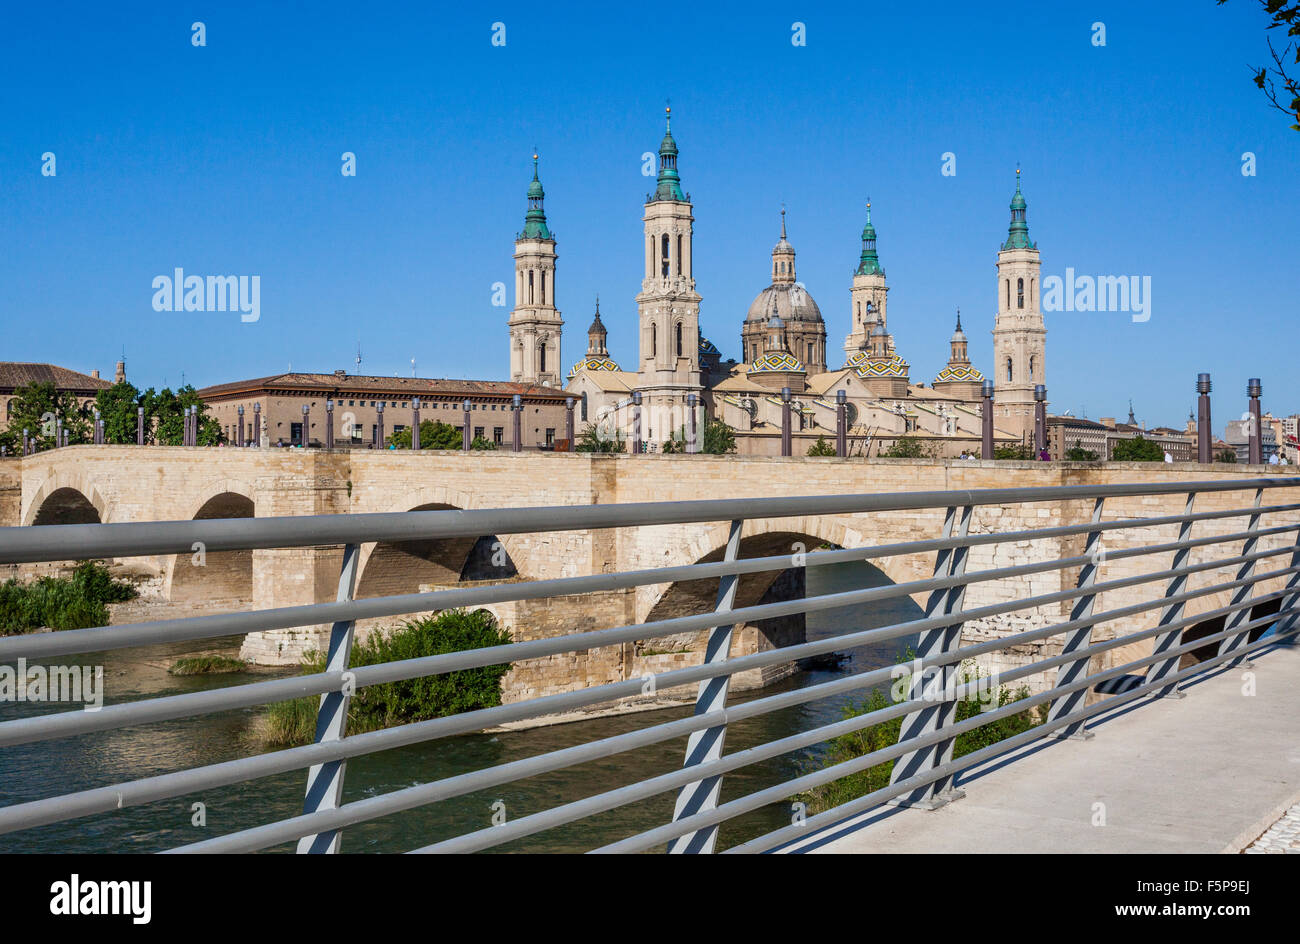 Spain, Aragon, Zaragoza, view of the Baroque style Basilica-Cathedral of Our Lady of the Pillar and Puente de Piedra - Stock Image